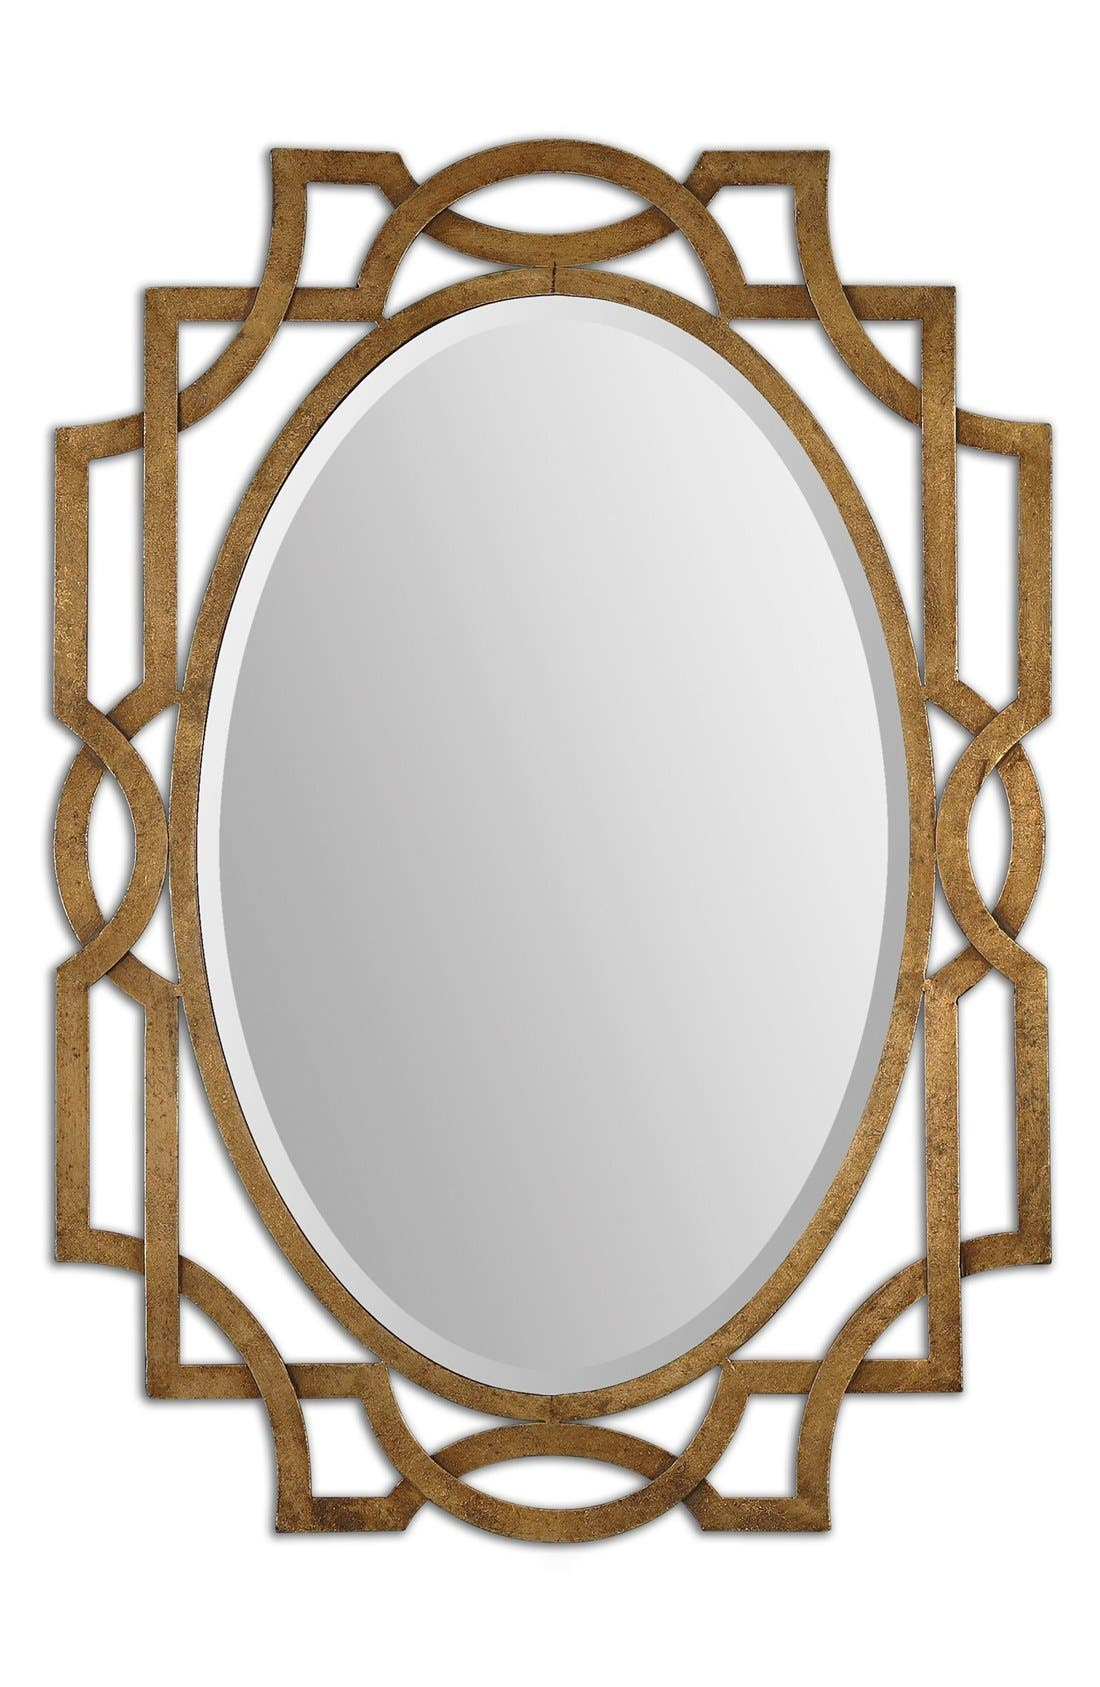 Alternate Image 1 Selected - Uttermost 'Margutta' Antiqued Goldtone Oval Mirror